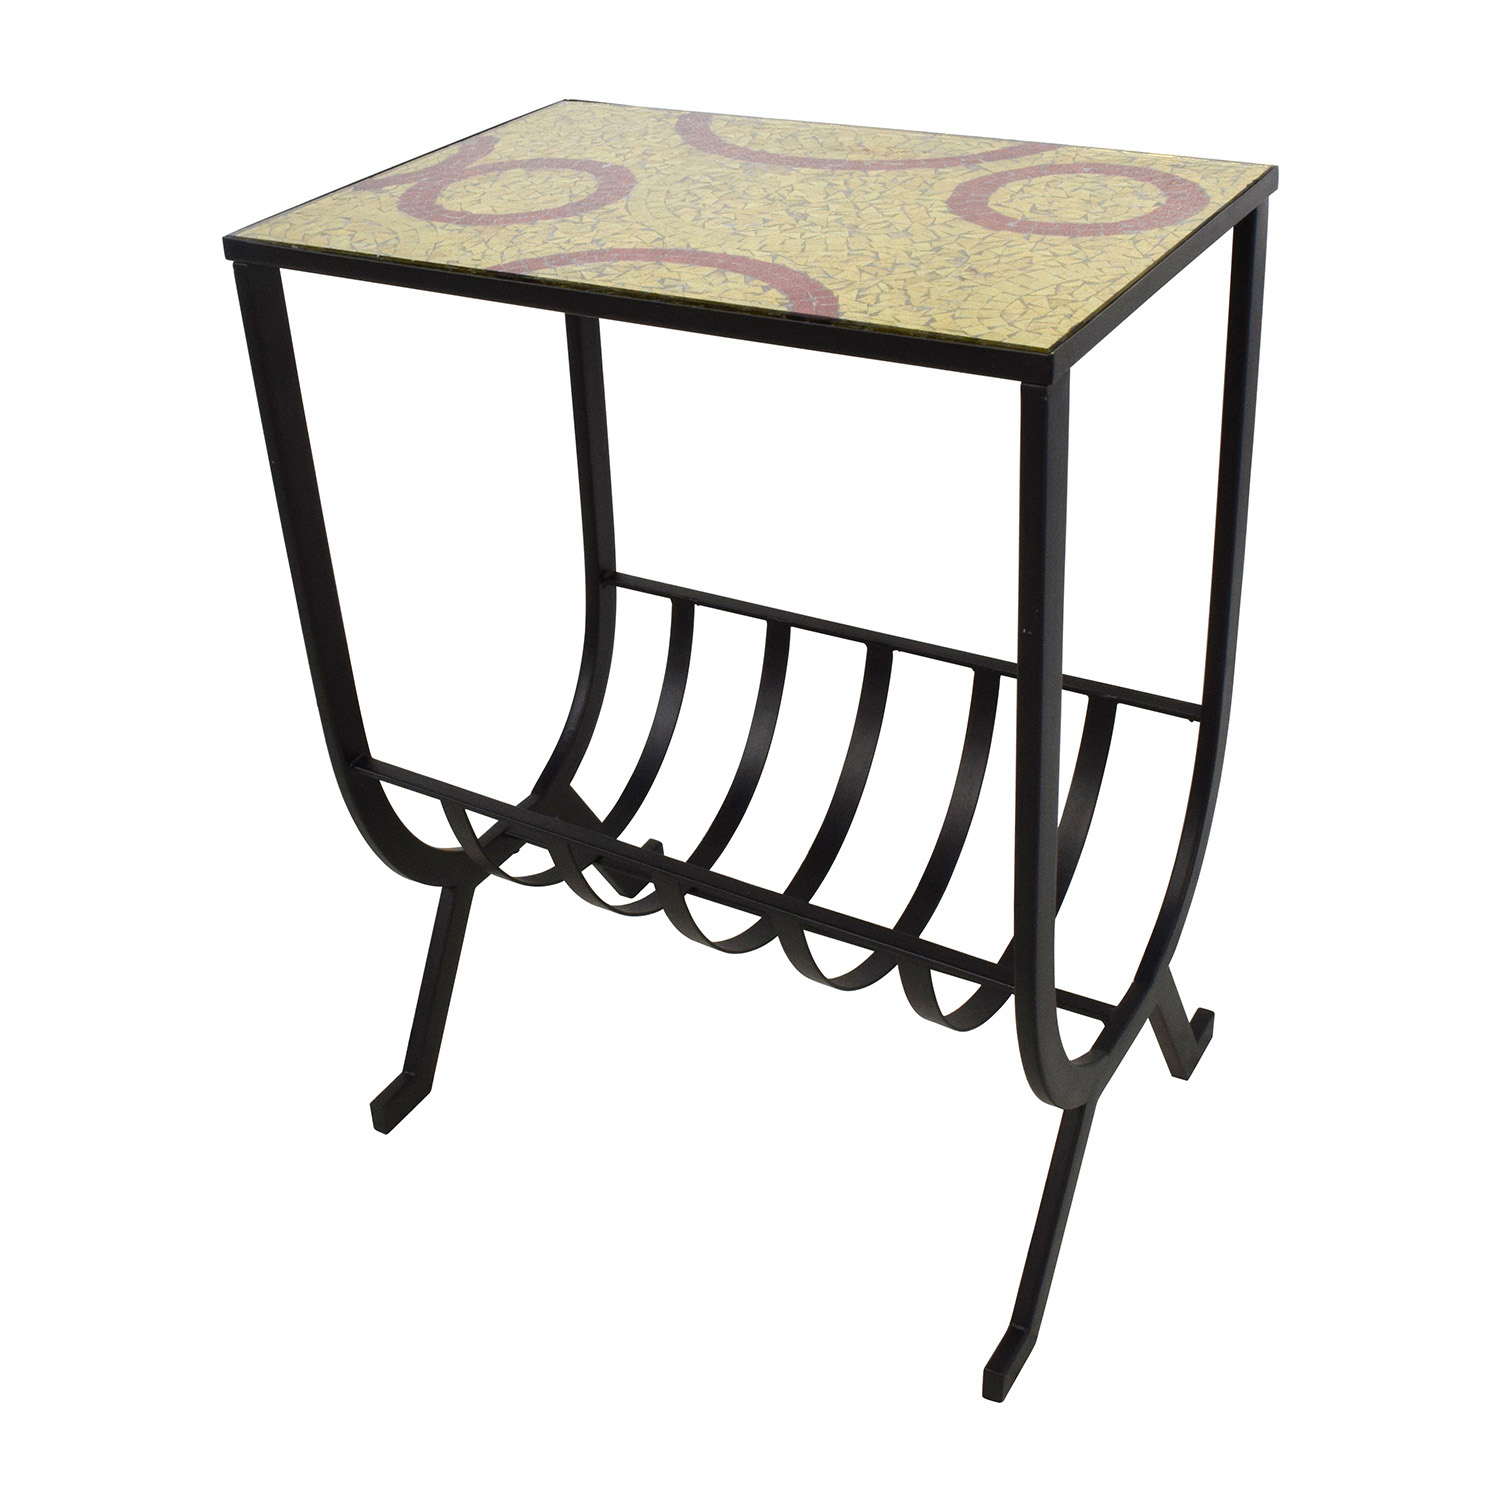 54 Off Pier 1 Mosaic Magazine Accent Table Tables